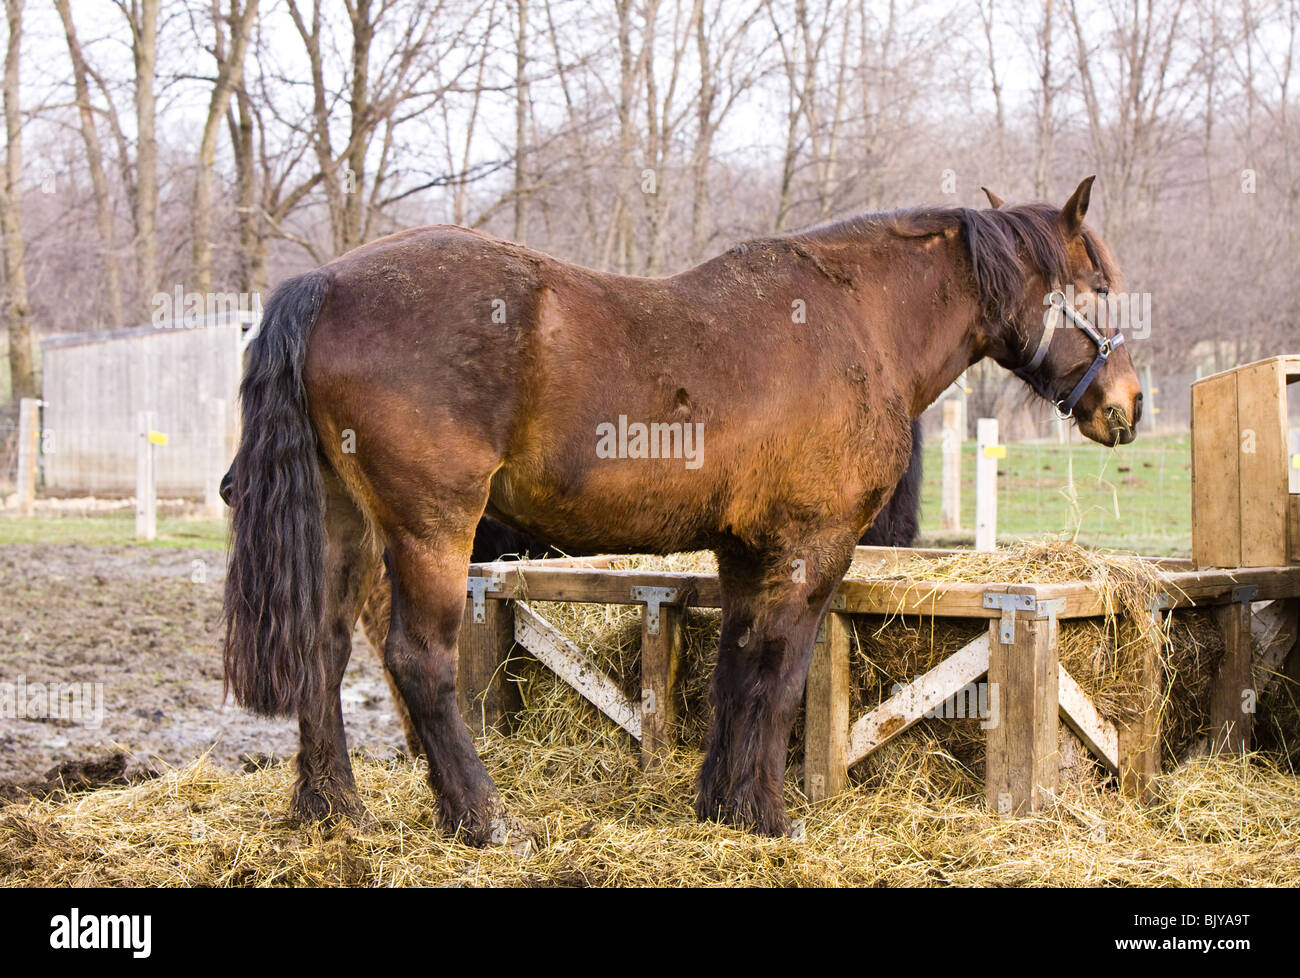 A brown horse eating grass from a manger. Stock Photo